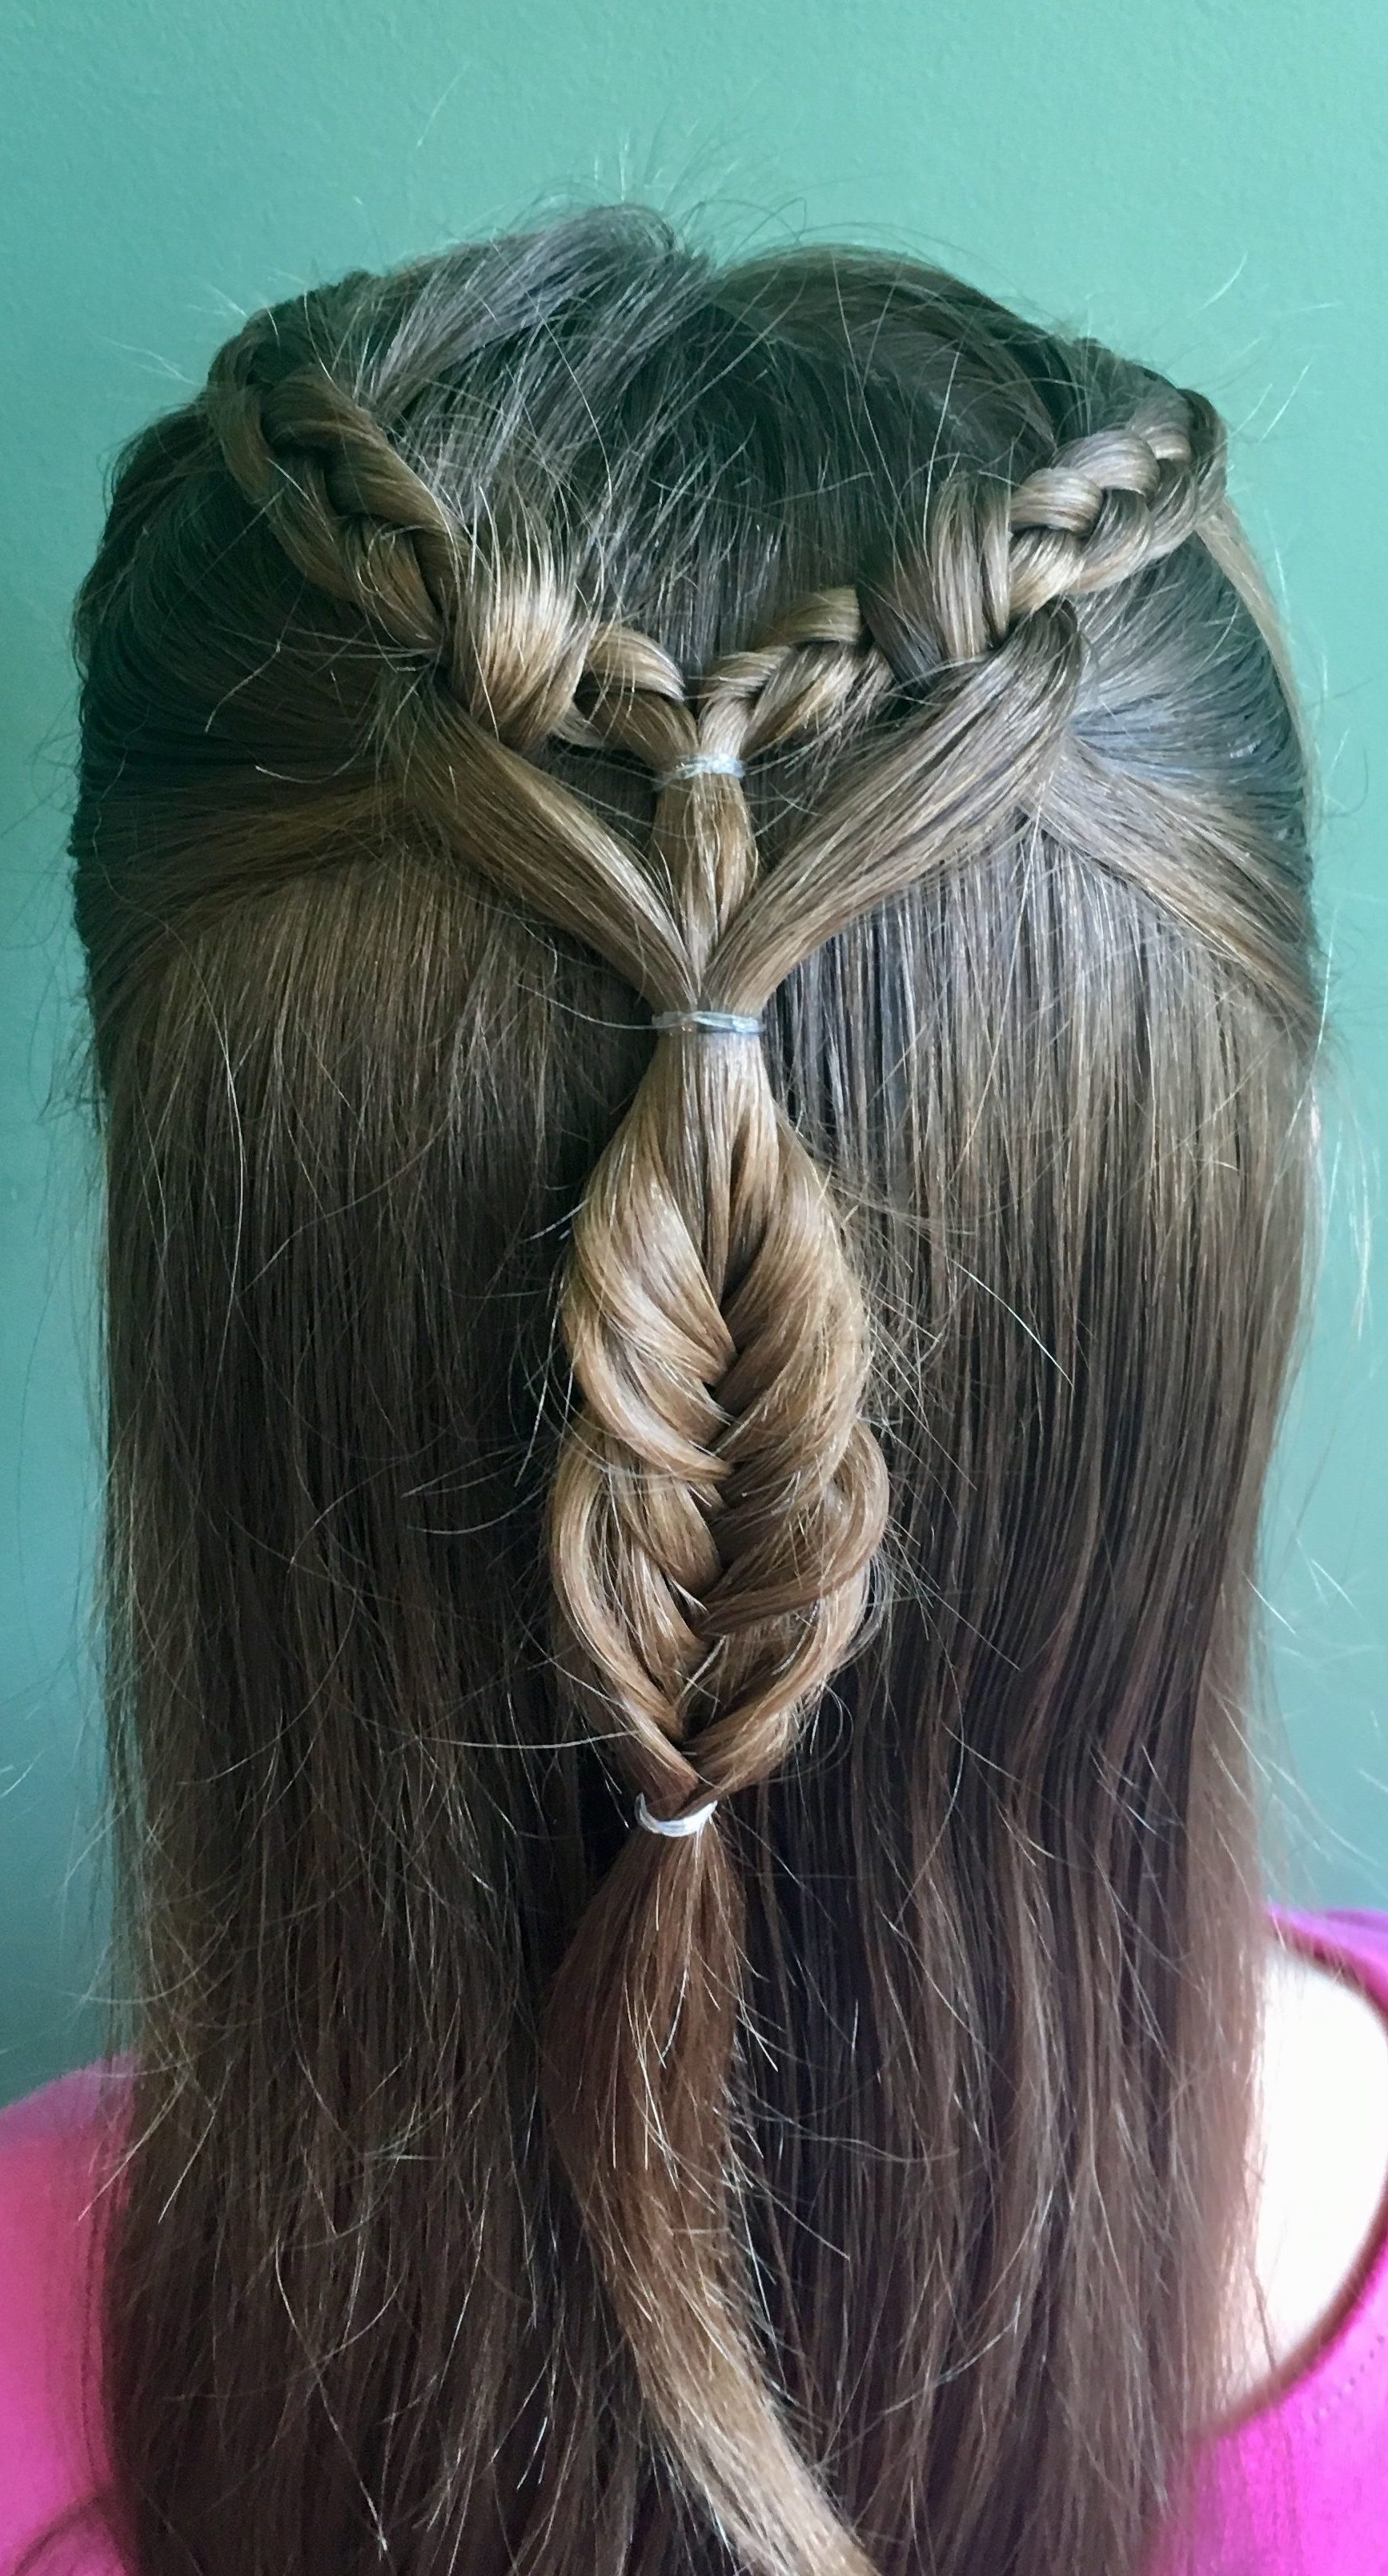 Popular Braid Spikelet Prom Hairstyles For 37 Dutch Braid Hairstyles – Braided Hairstyles With Tutorials – With (View 16 of 20)